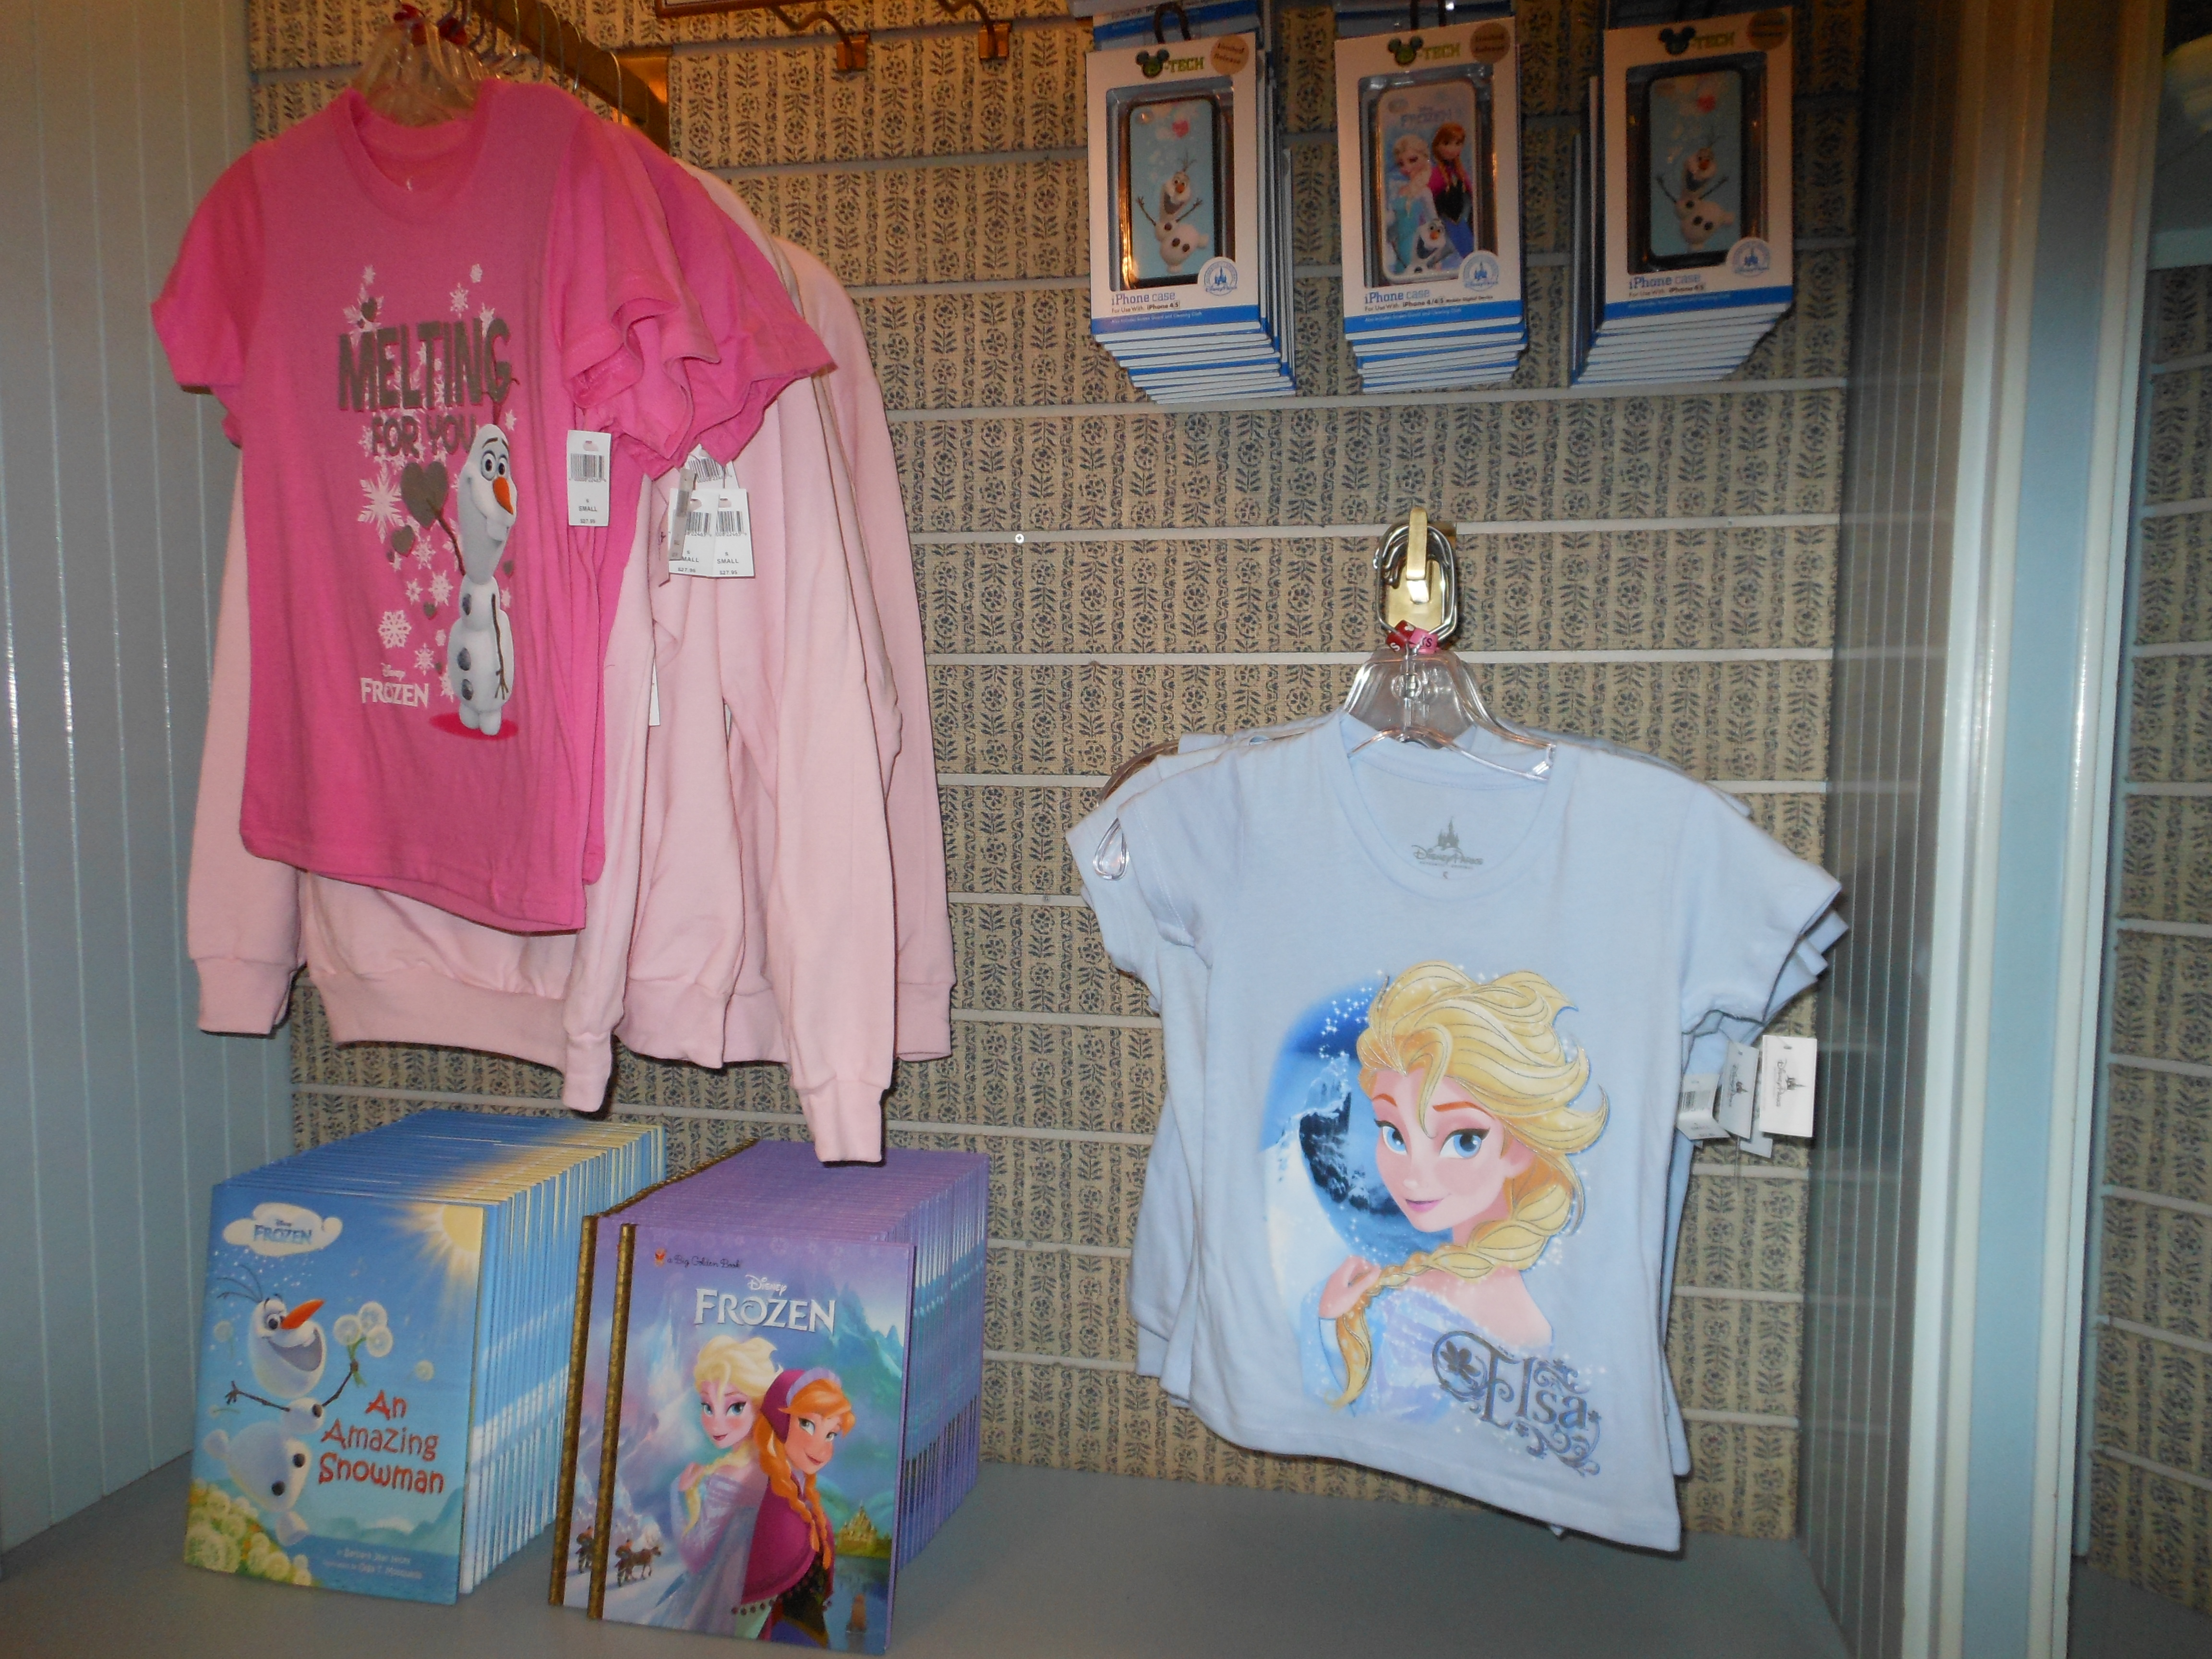 Lack of 'Frozen' Merchandise at WDW